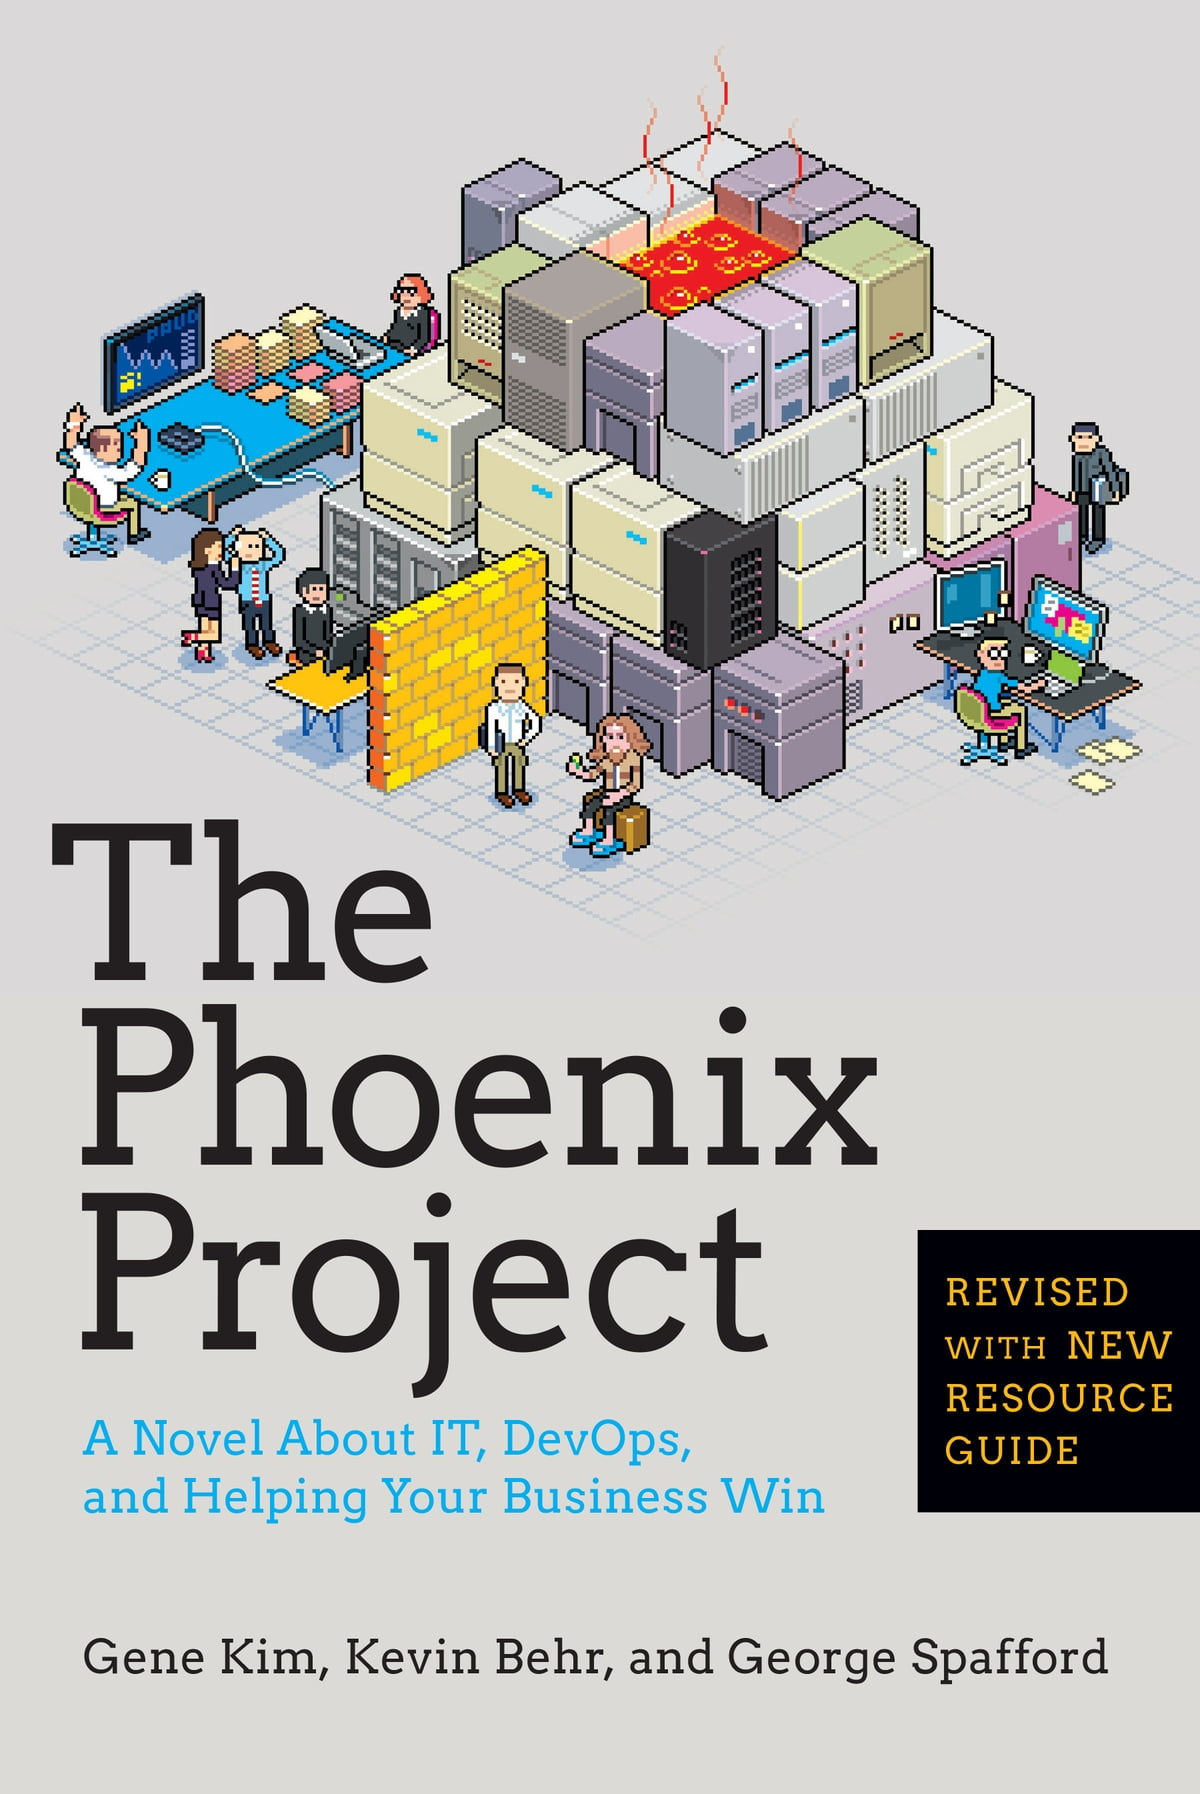 The Phoenix Project - A Novel About IT, DevOps, and Helping Your Business  Win